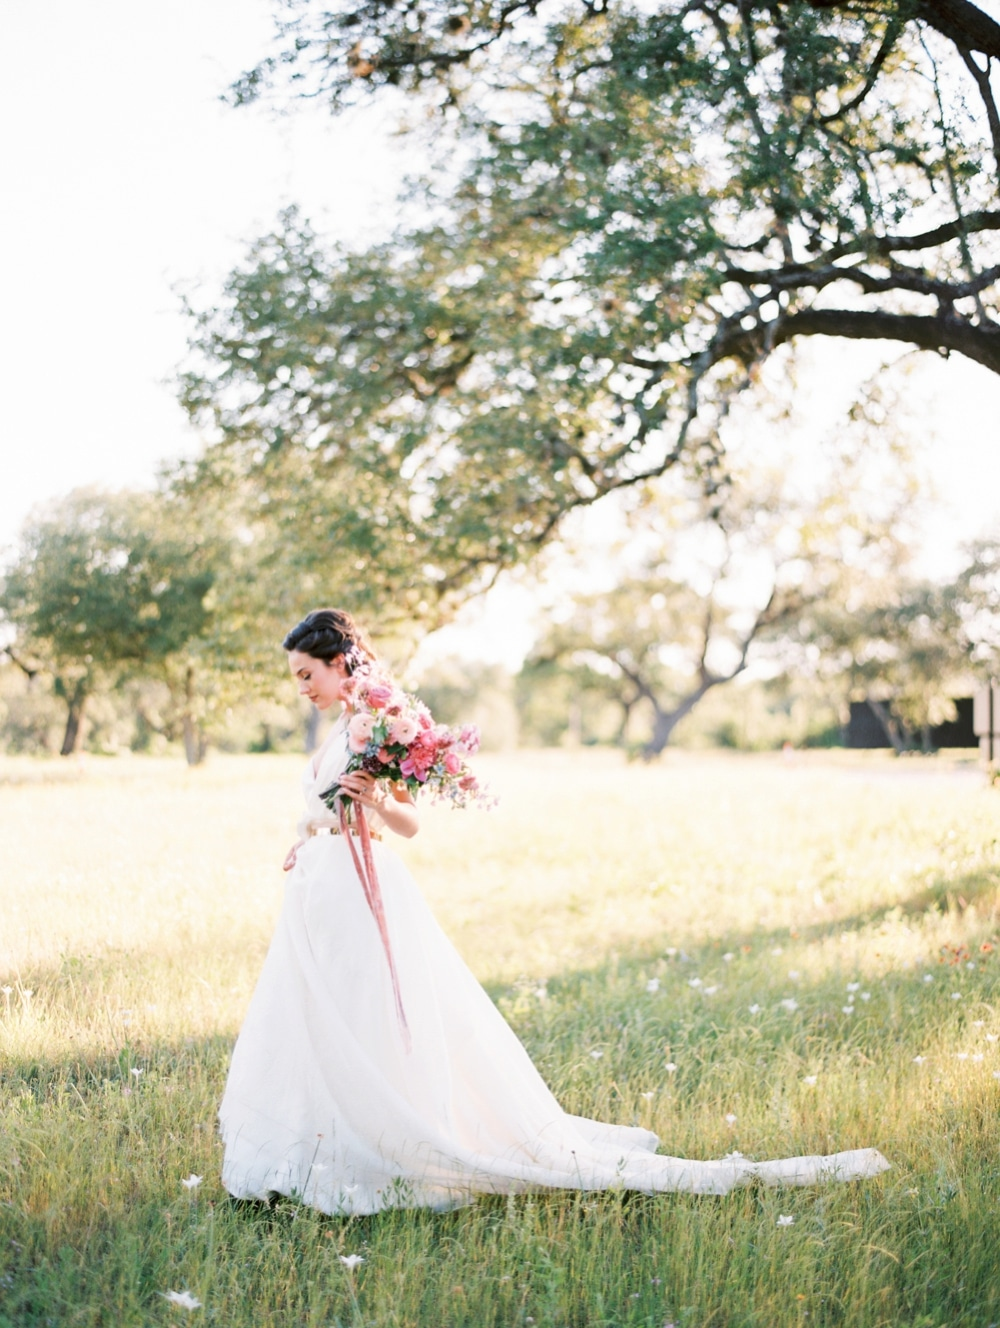 kristin-la-voie-photography-Austin-Wedding-Photographer-2